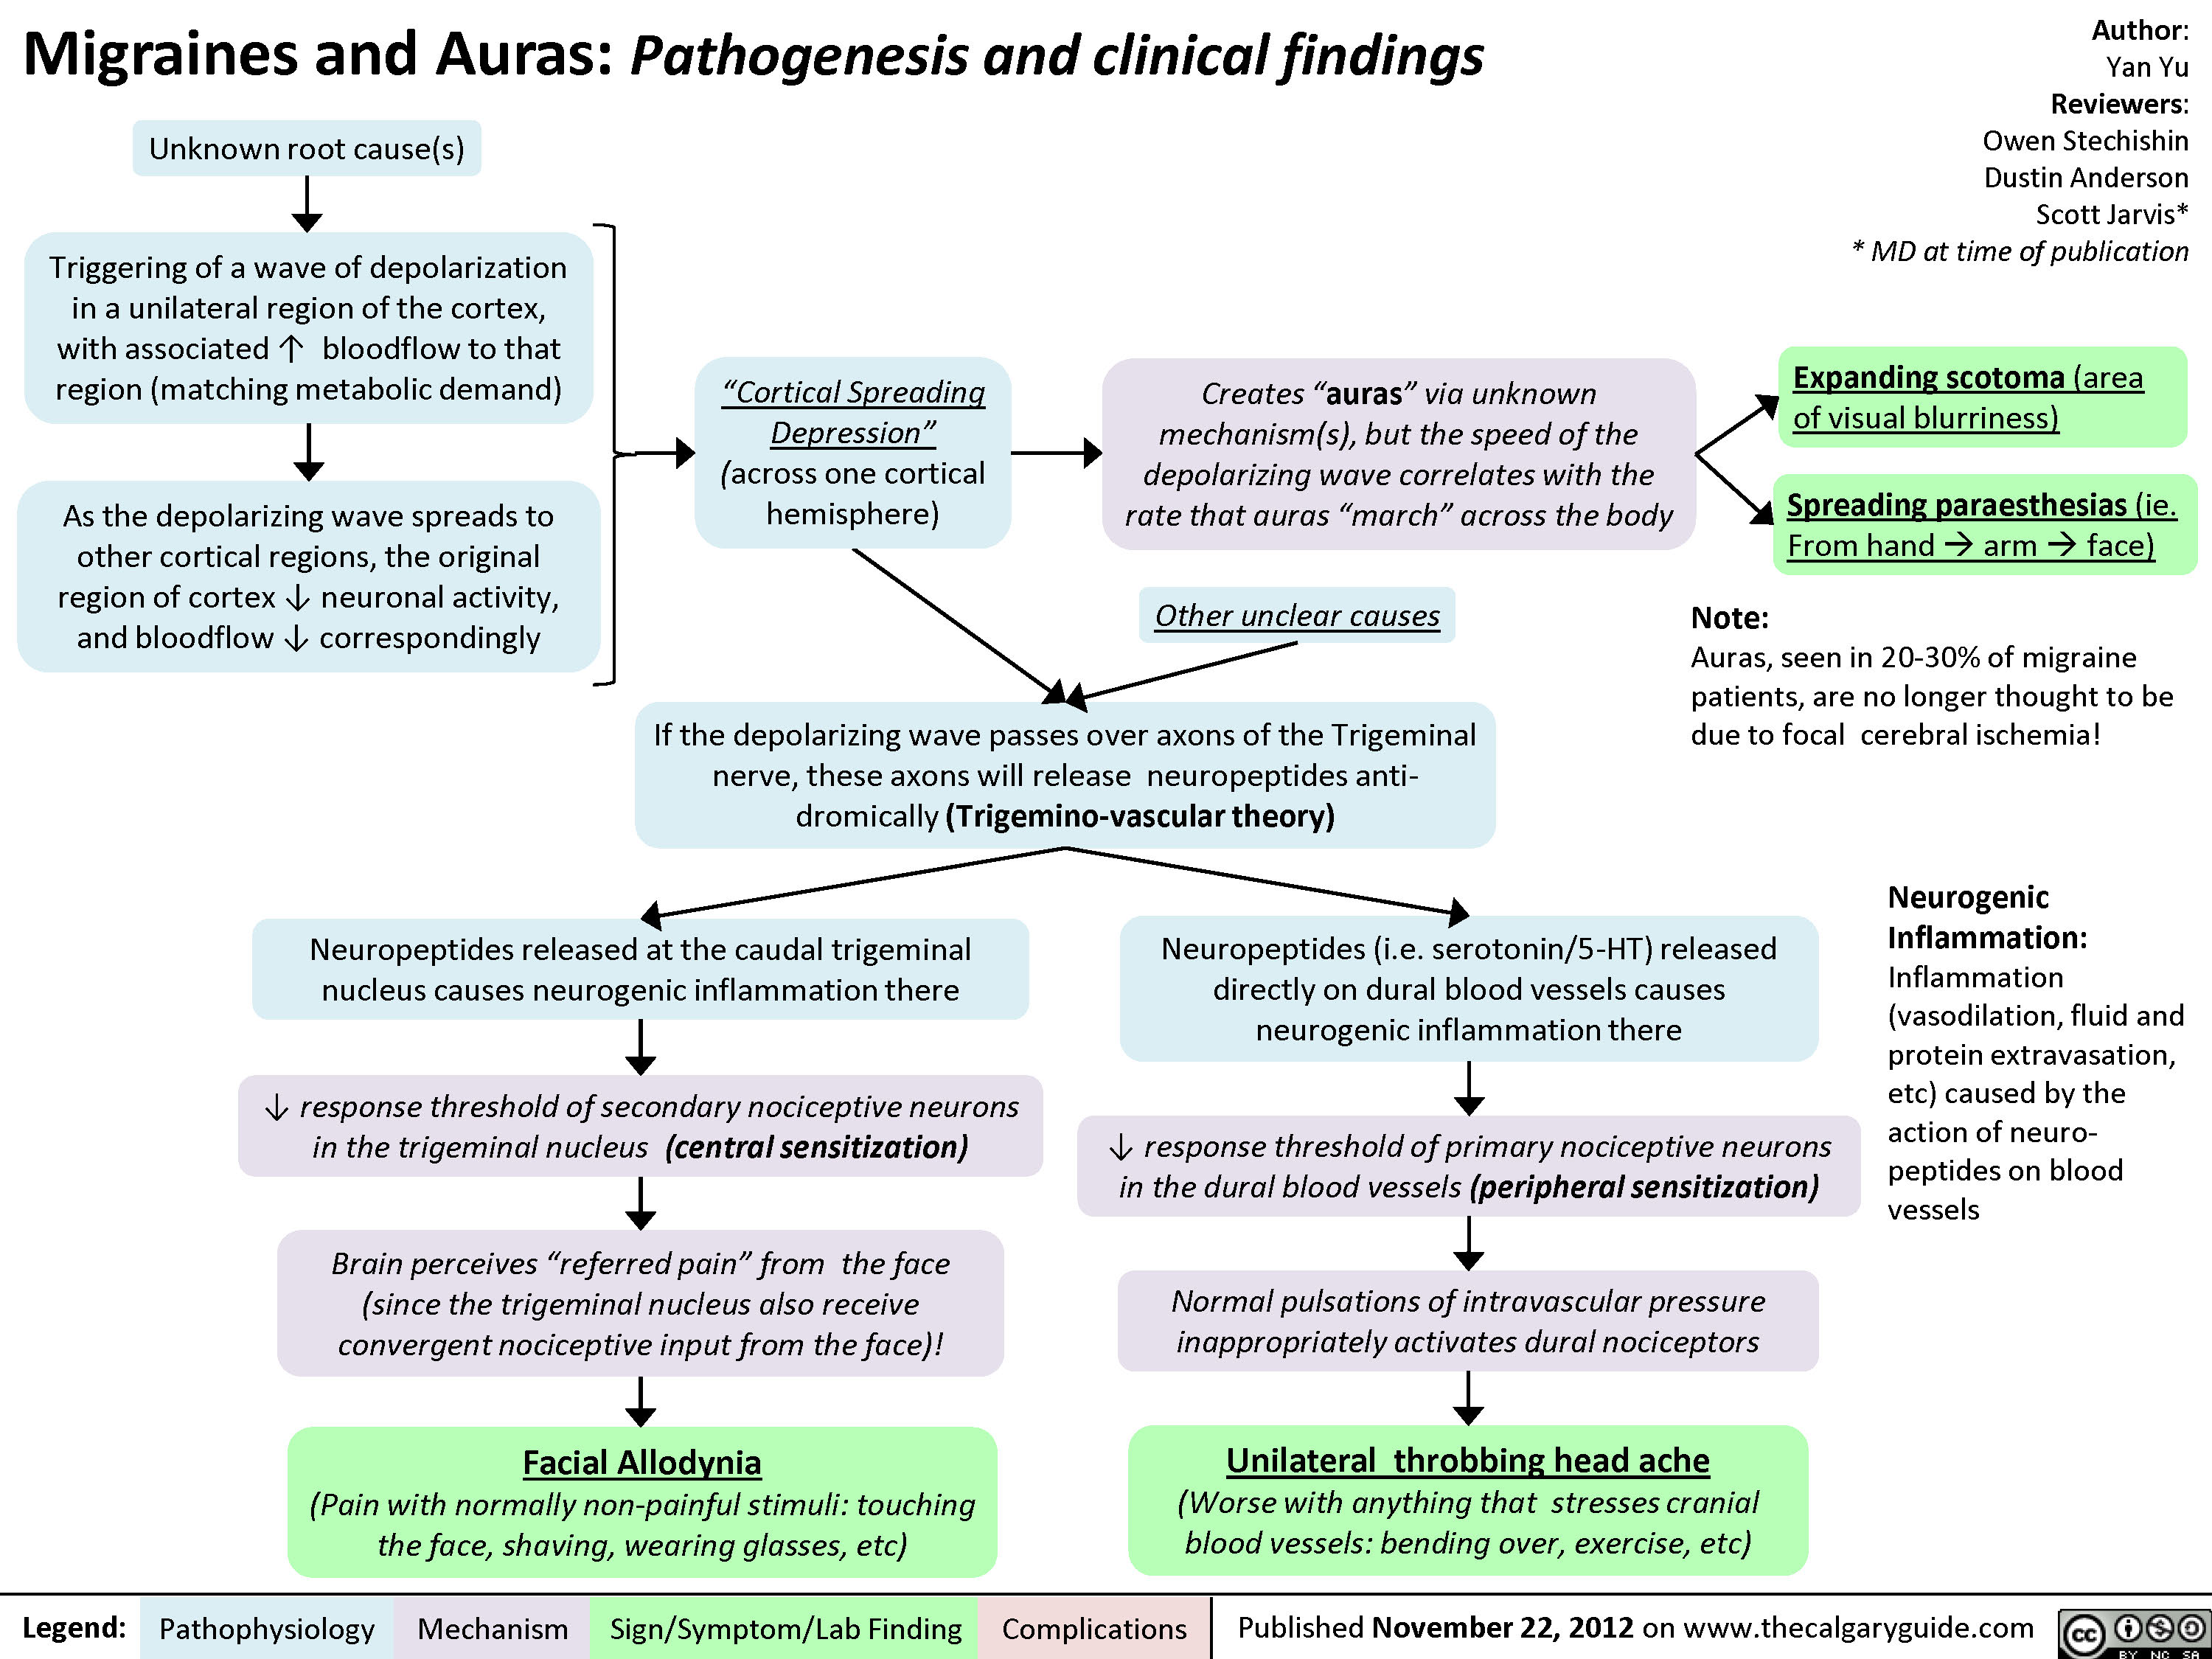 Migraines and Auras Pathogenesis and Clinical Findings